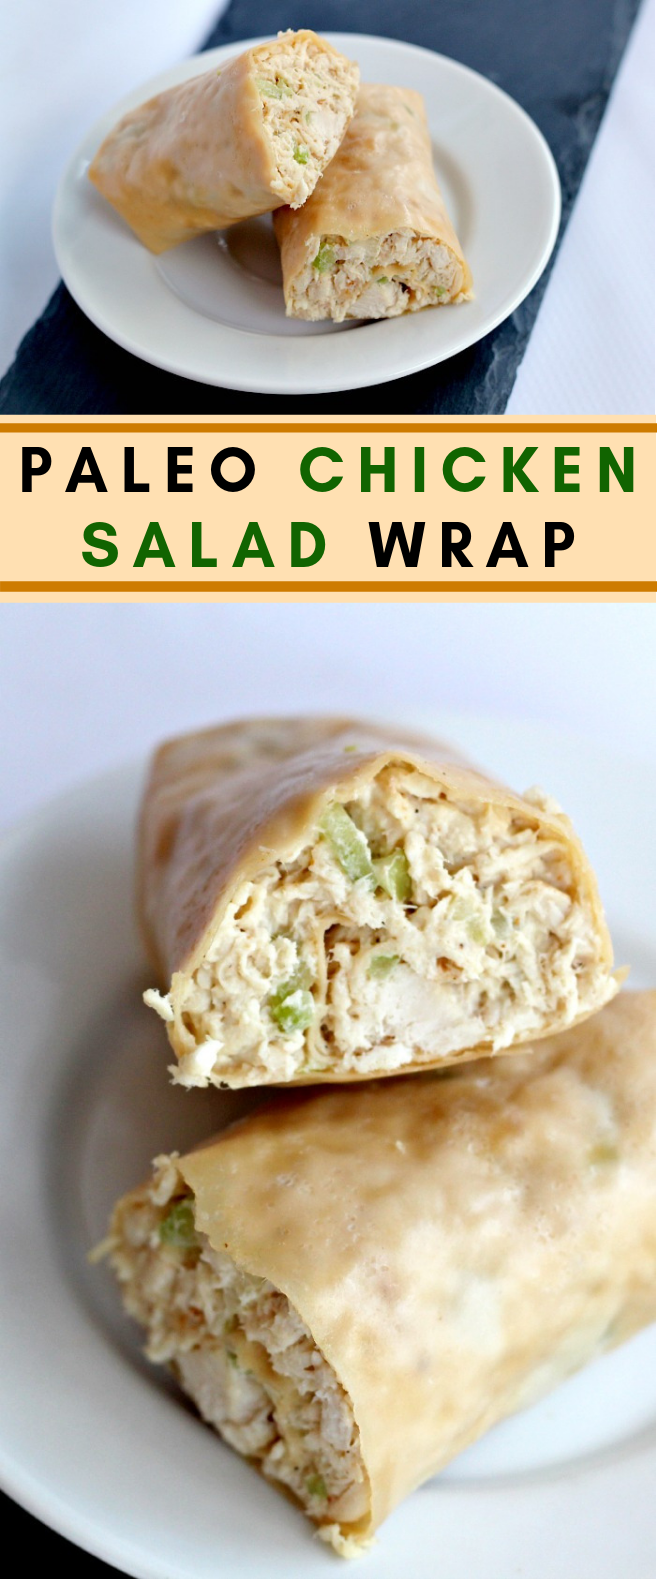 PALEO CHICKEN SALAD WRAPS #paleo #glutenfree